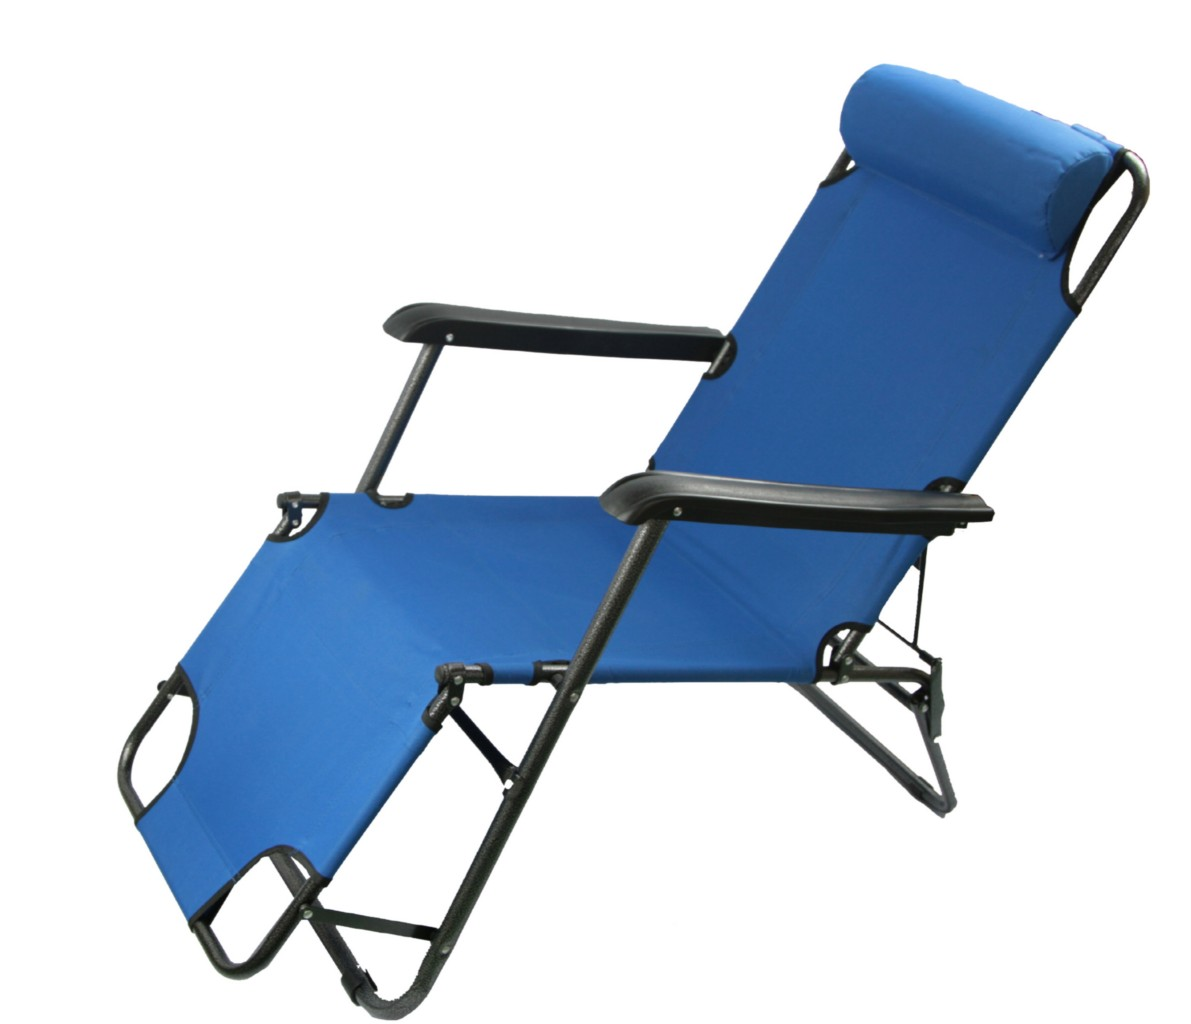 Portable Outdoor Kitchens: NEW Light Portable Folding RECLINER Outdoor Lounge Chair